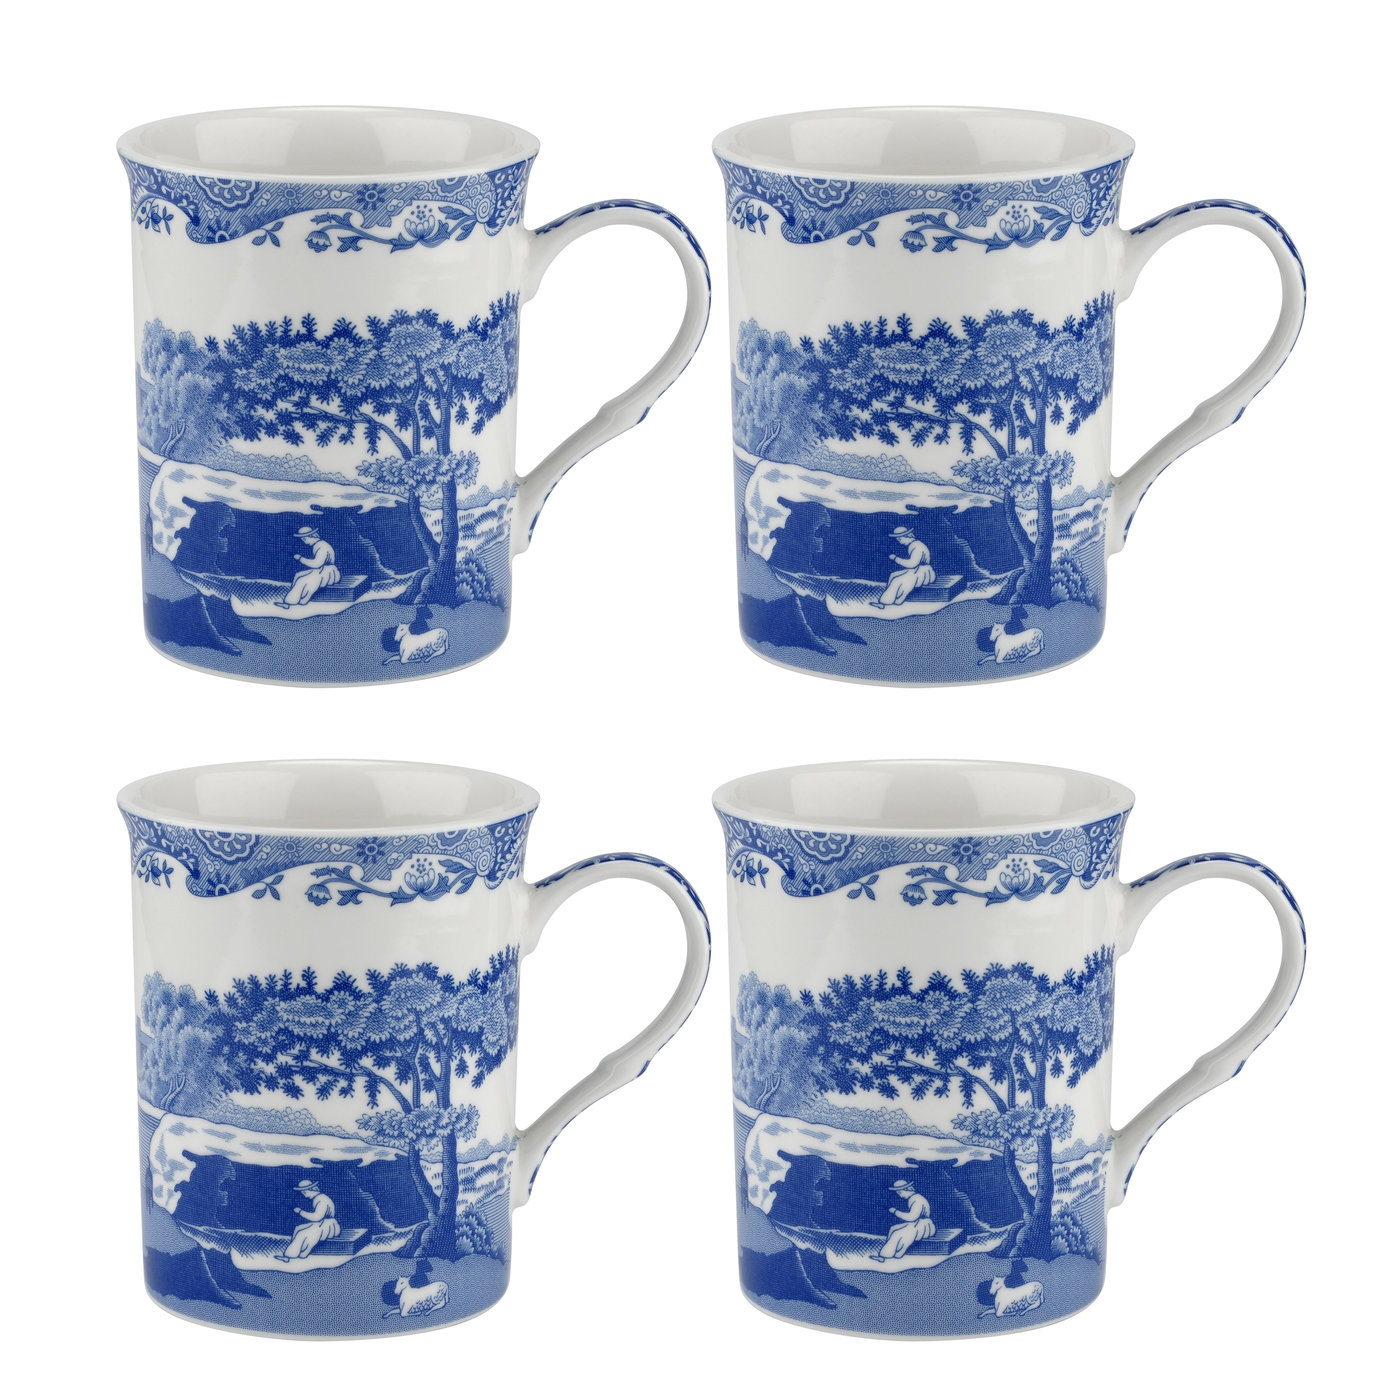 Spode Blue Italian 12 oz Mugs Set of 4 image number 0